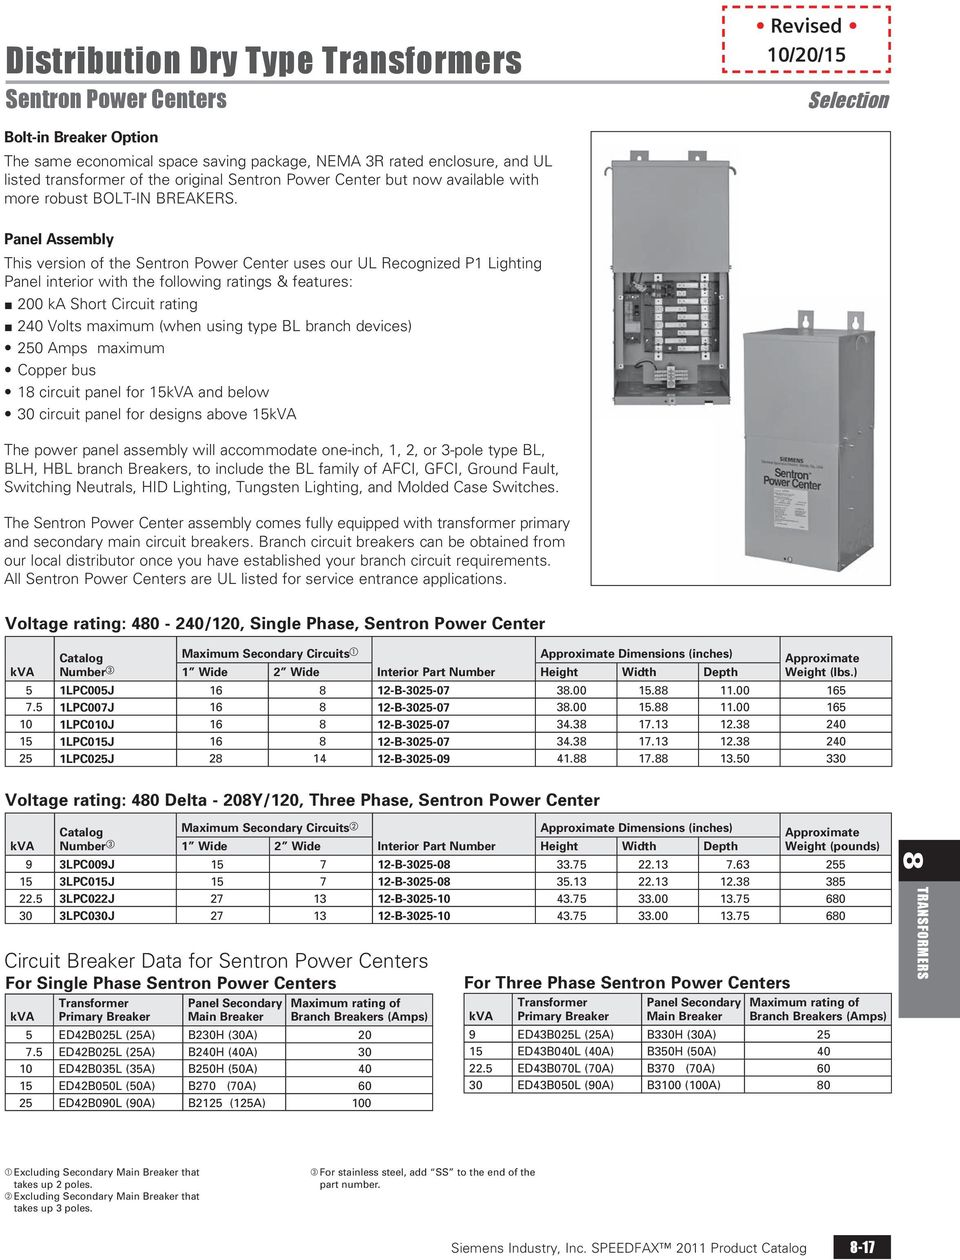 Distribution Dry Type Transformers Pdf Wac Transformer Wiring Diagrams Panel Assembly This Version Of The Sentron Power Center Uses Our Ul Recognized P1 Lighting